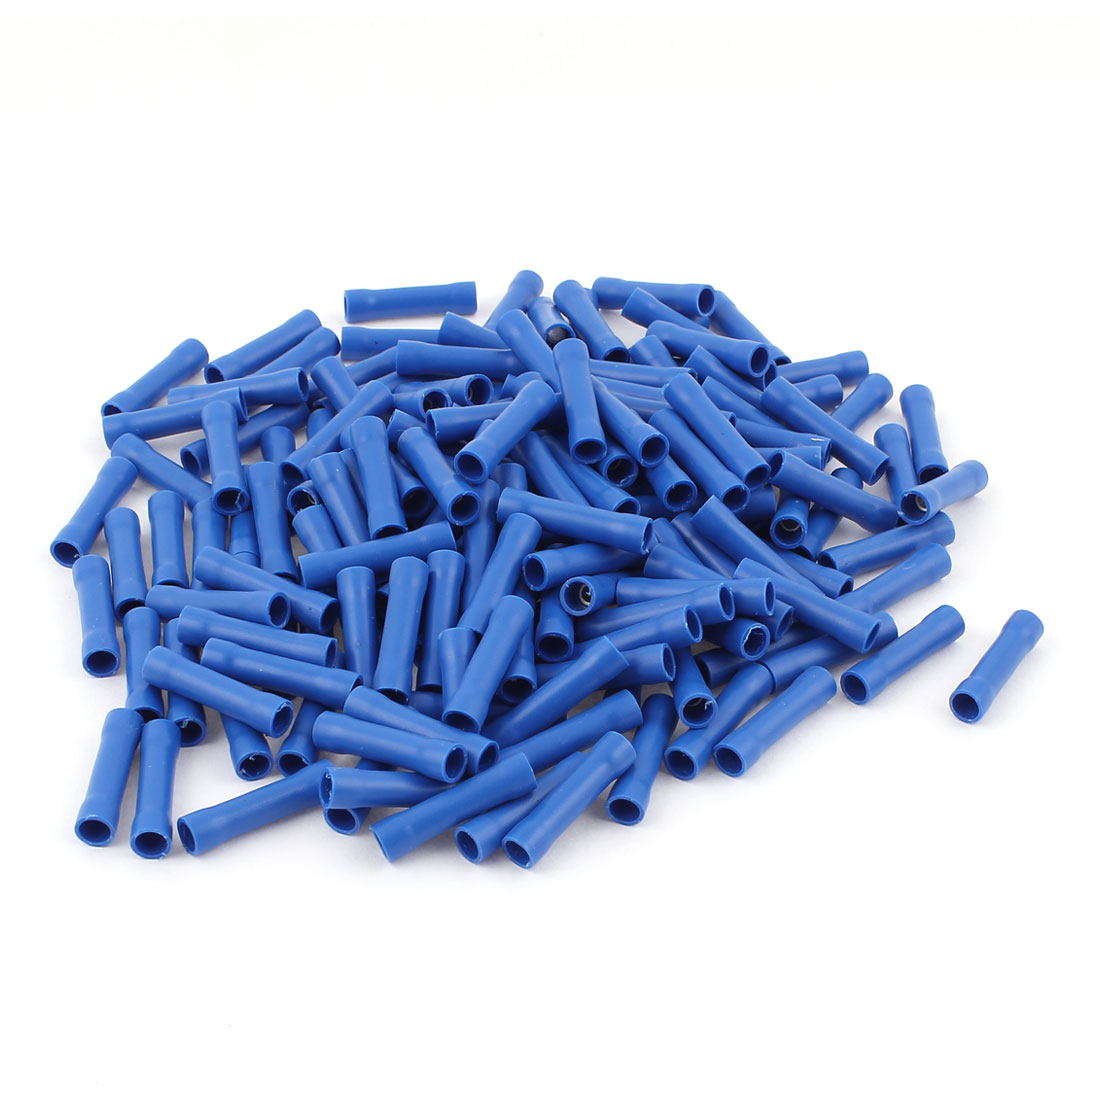 170Pcs Dual Ends Blue Plastic Sleeve Insulated Female Crimp Wiring Terminal Cable Connector for AWG16-14